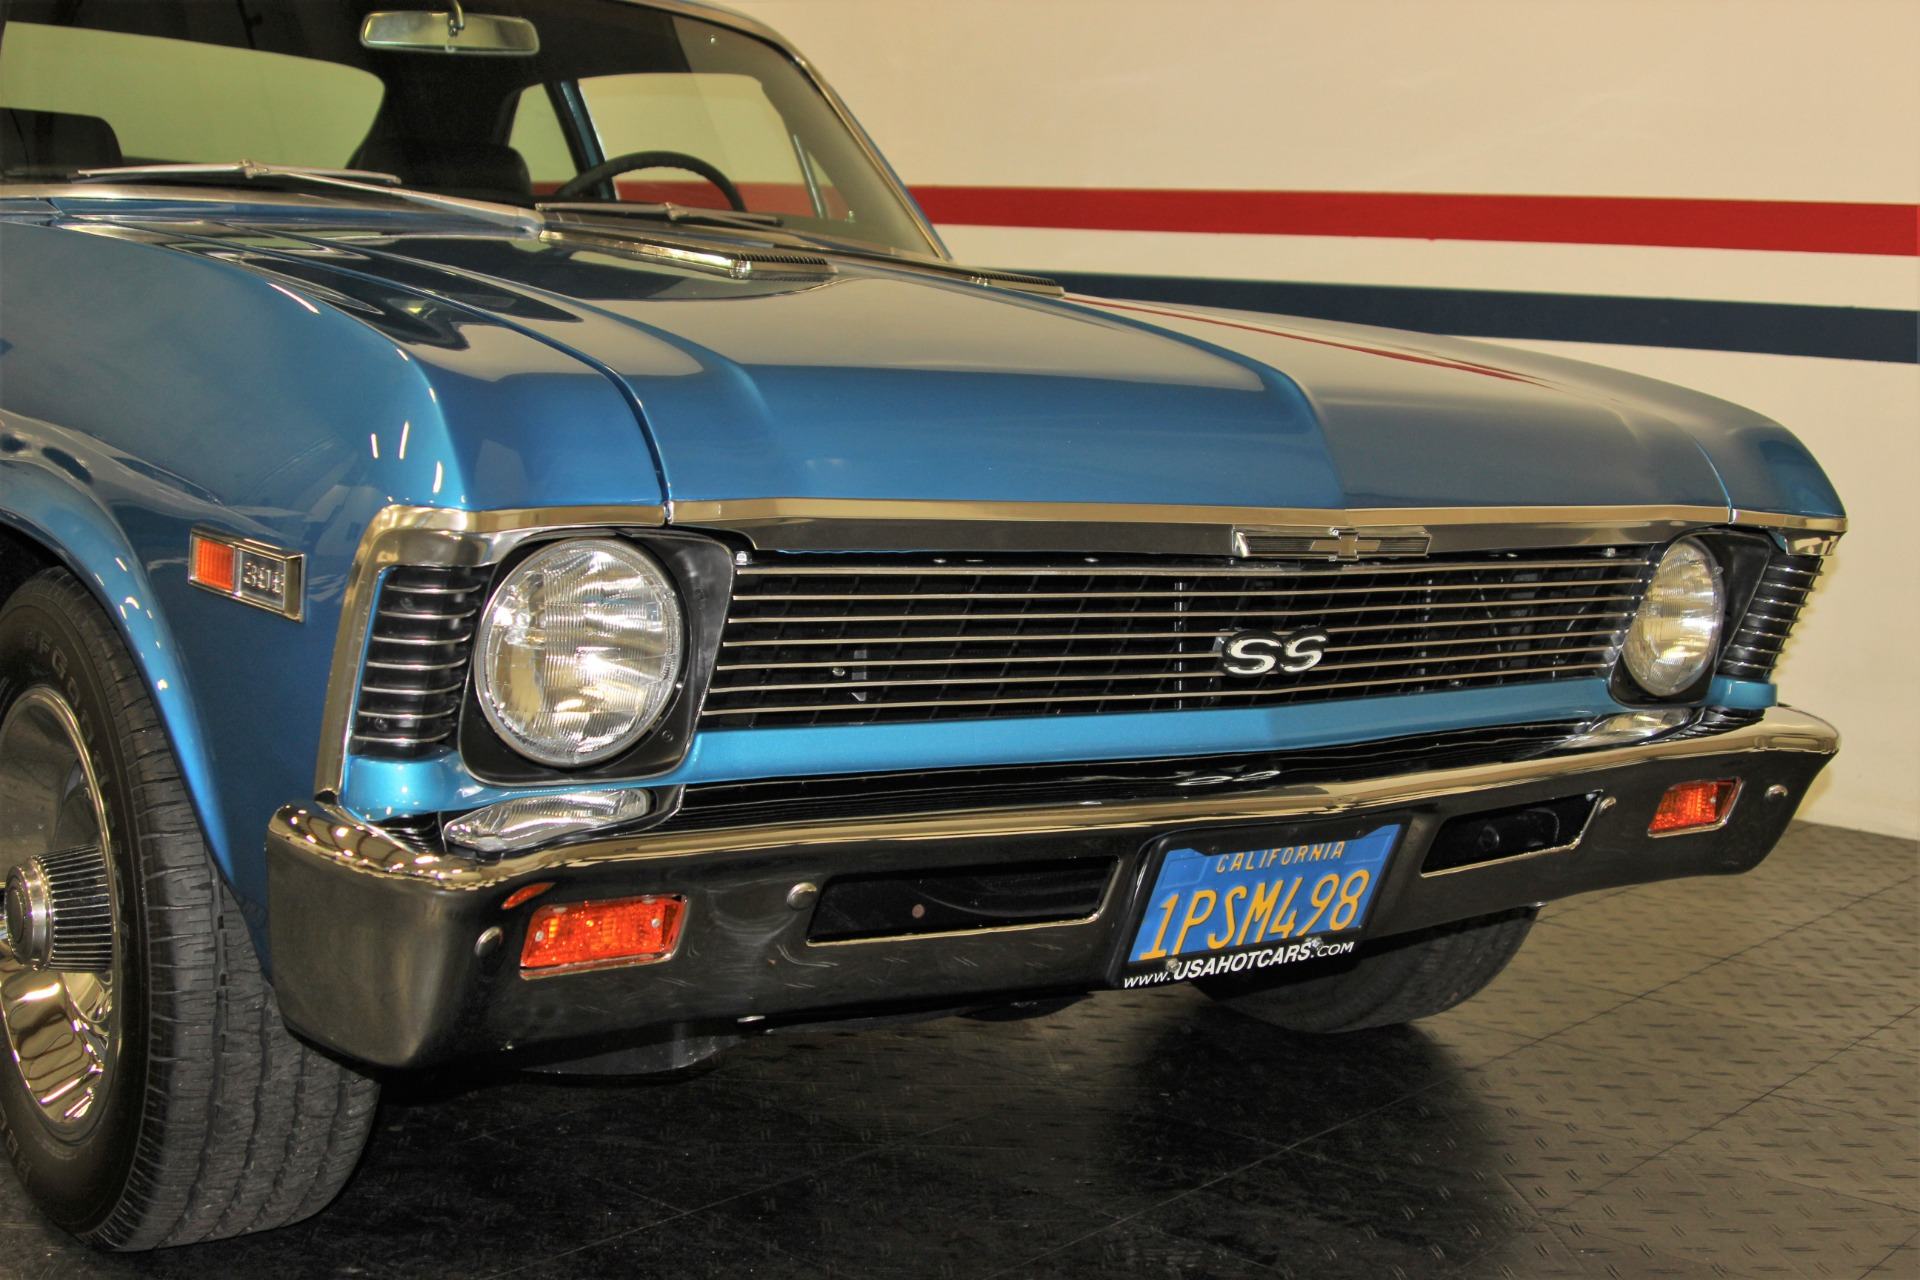 Used-1969-Chevrolet-Nova-Super-Sport-L78